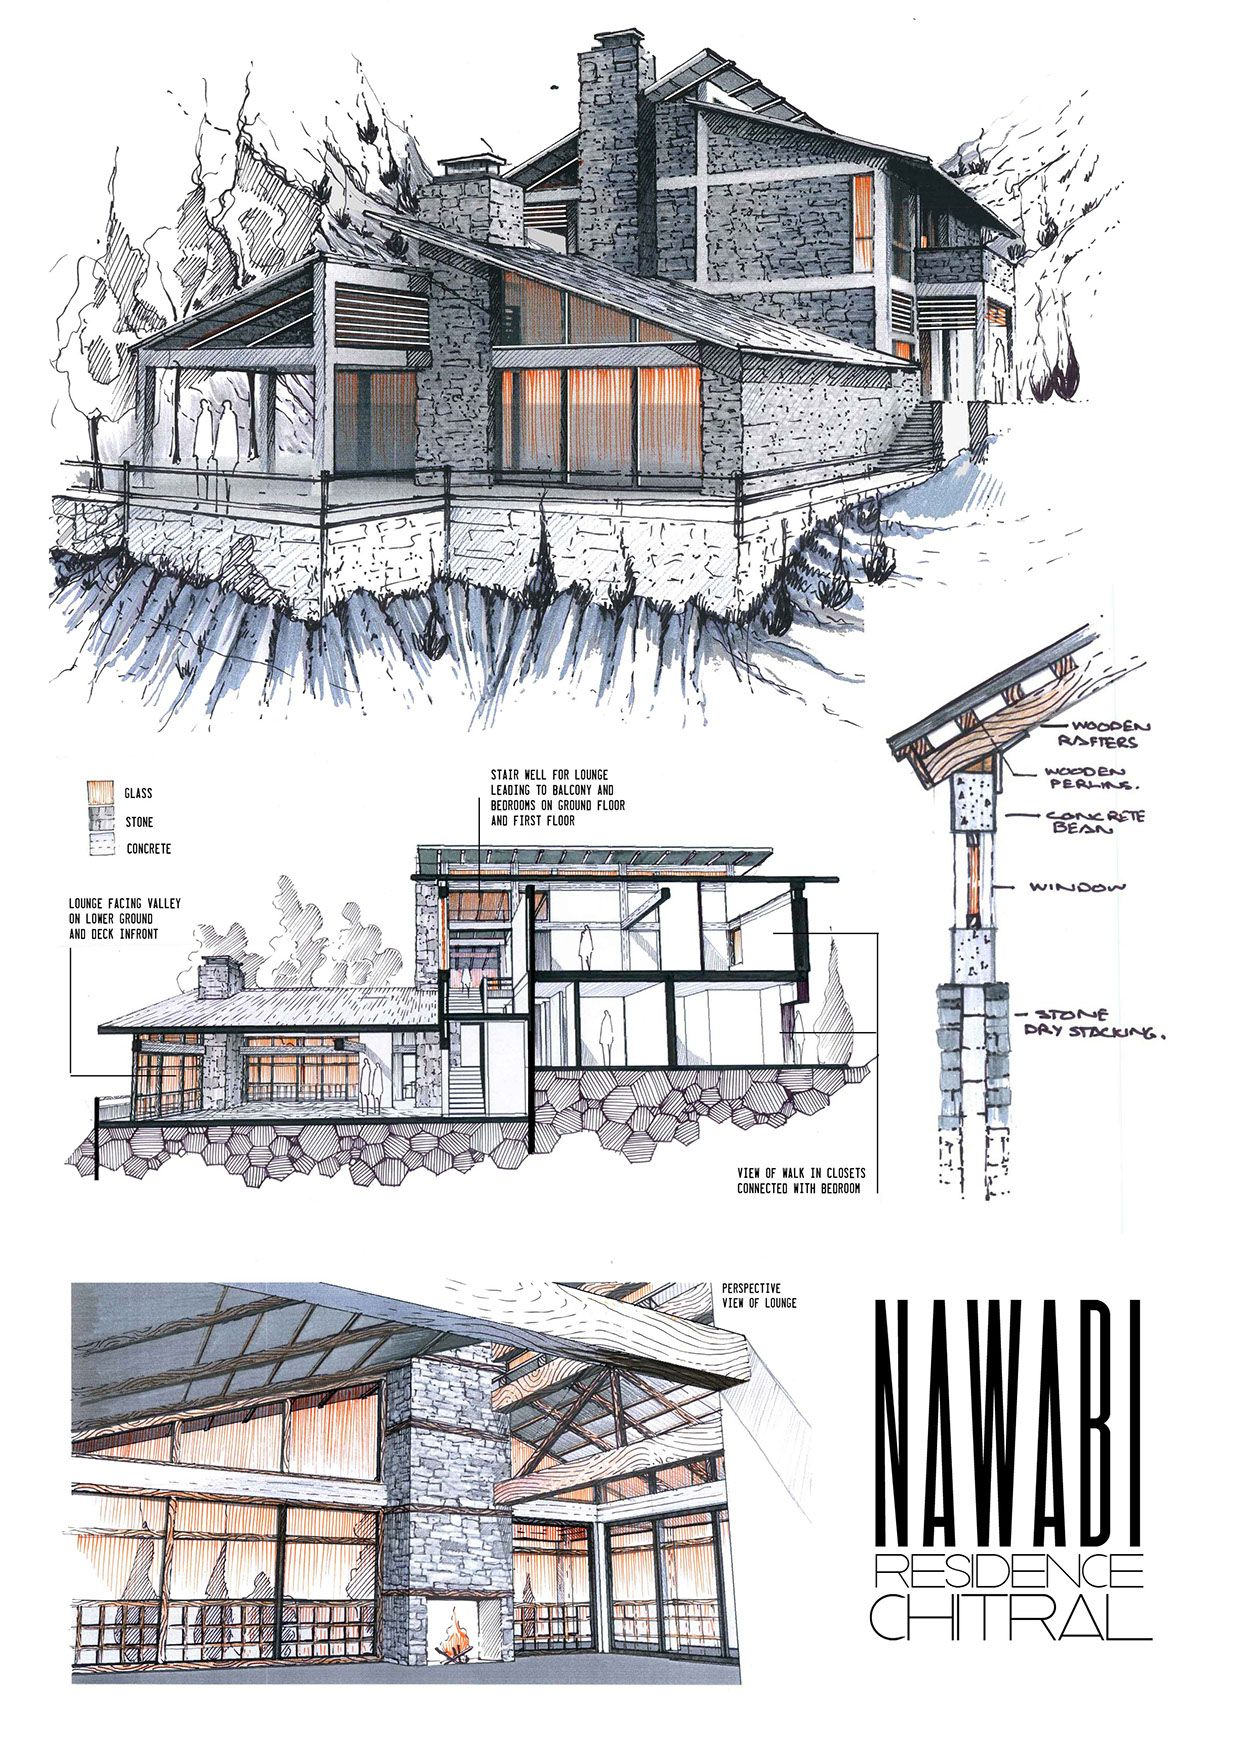 Amazing Oh+A Designworks Conceptual Development Of Projects And Design Ideas.  Rendering ArchitectureArchitecture ...